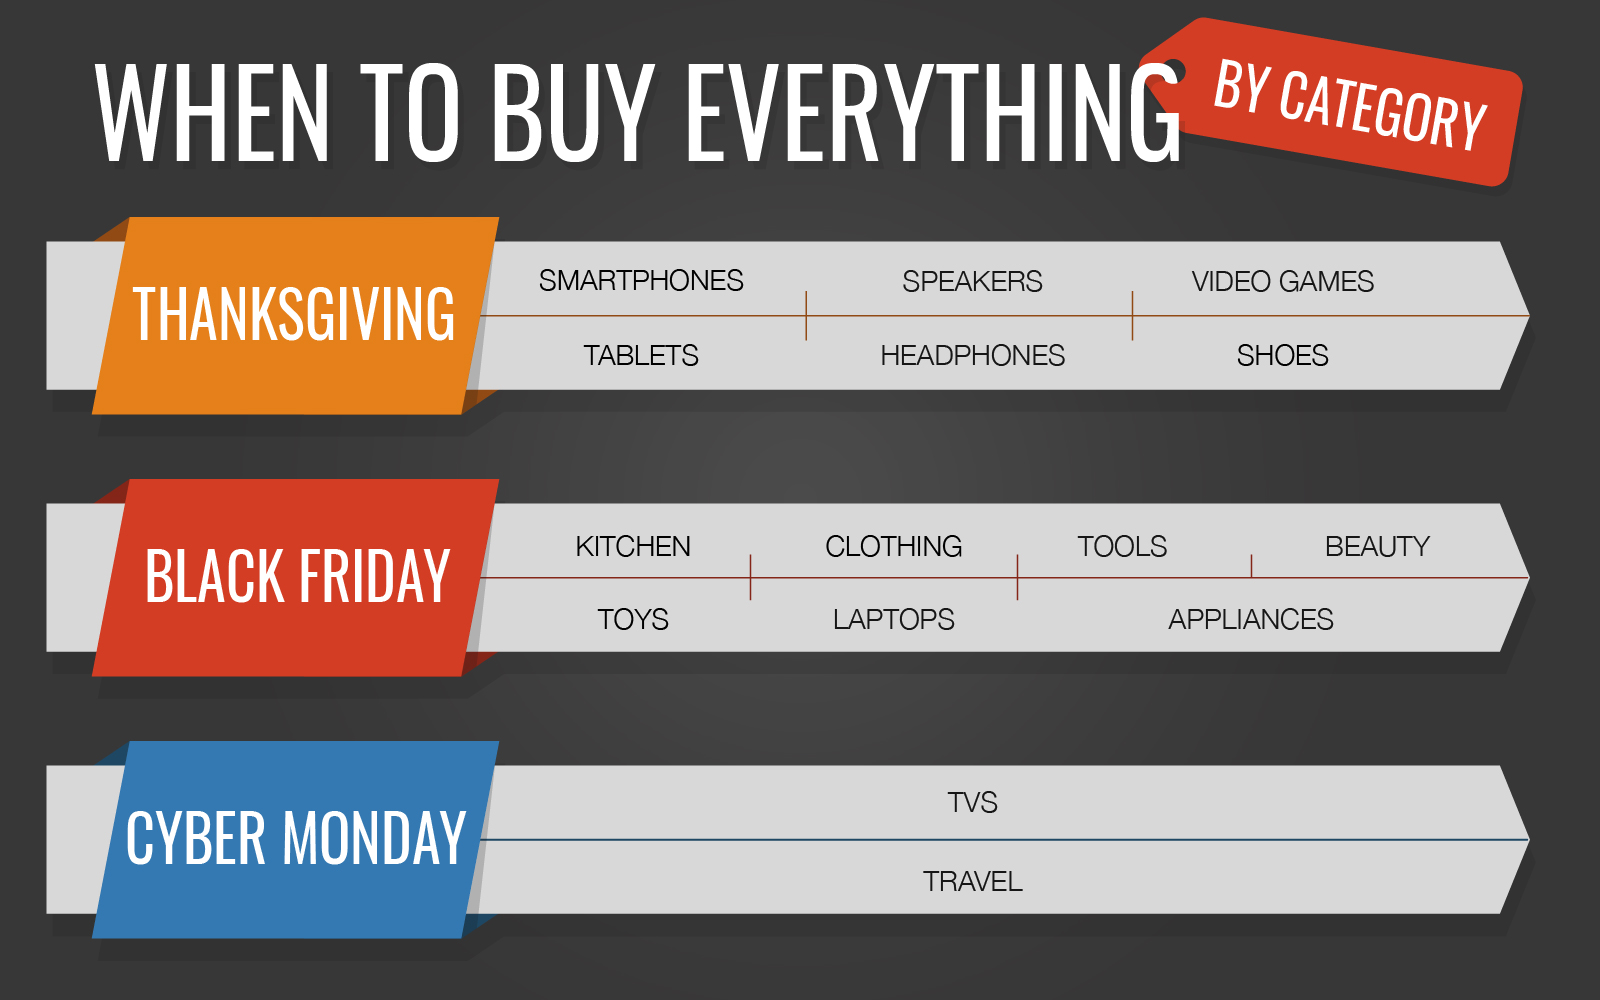 Black Fruday Thanksgiving Vs Black Friday Vs Cyber Monday What To Buy Each Day